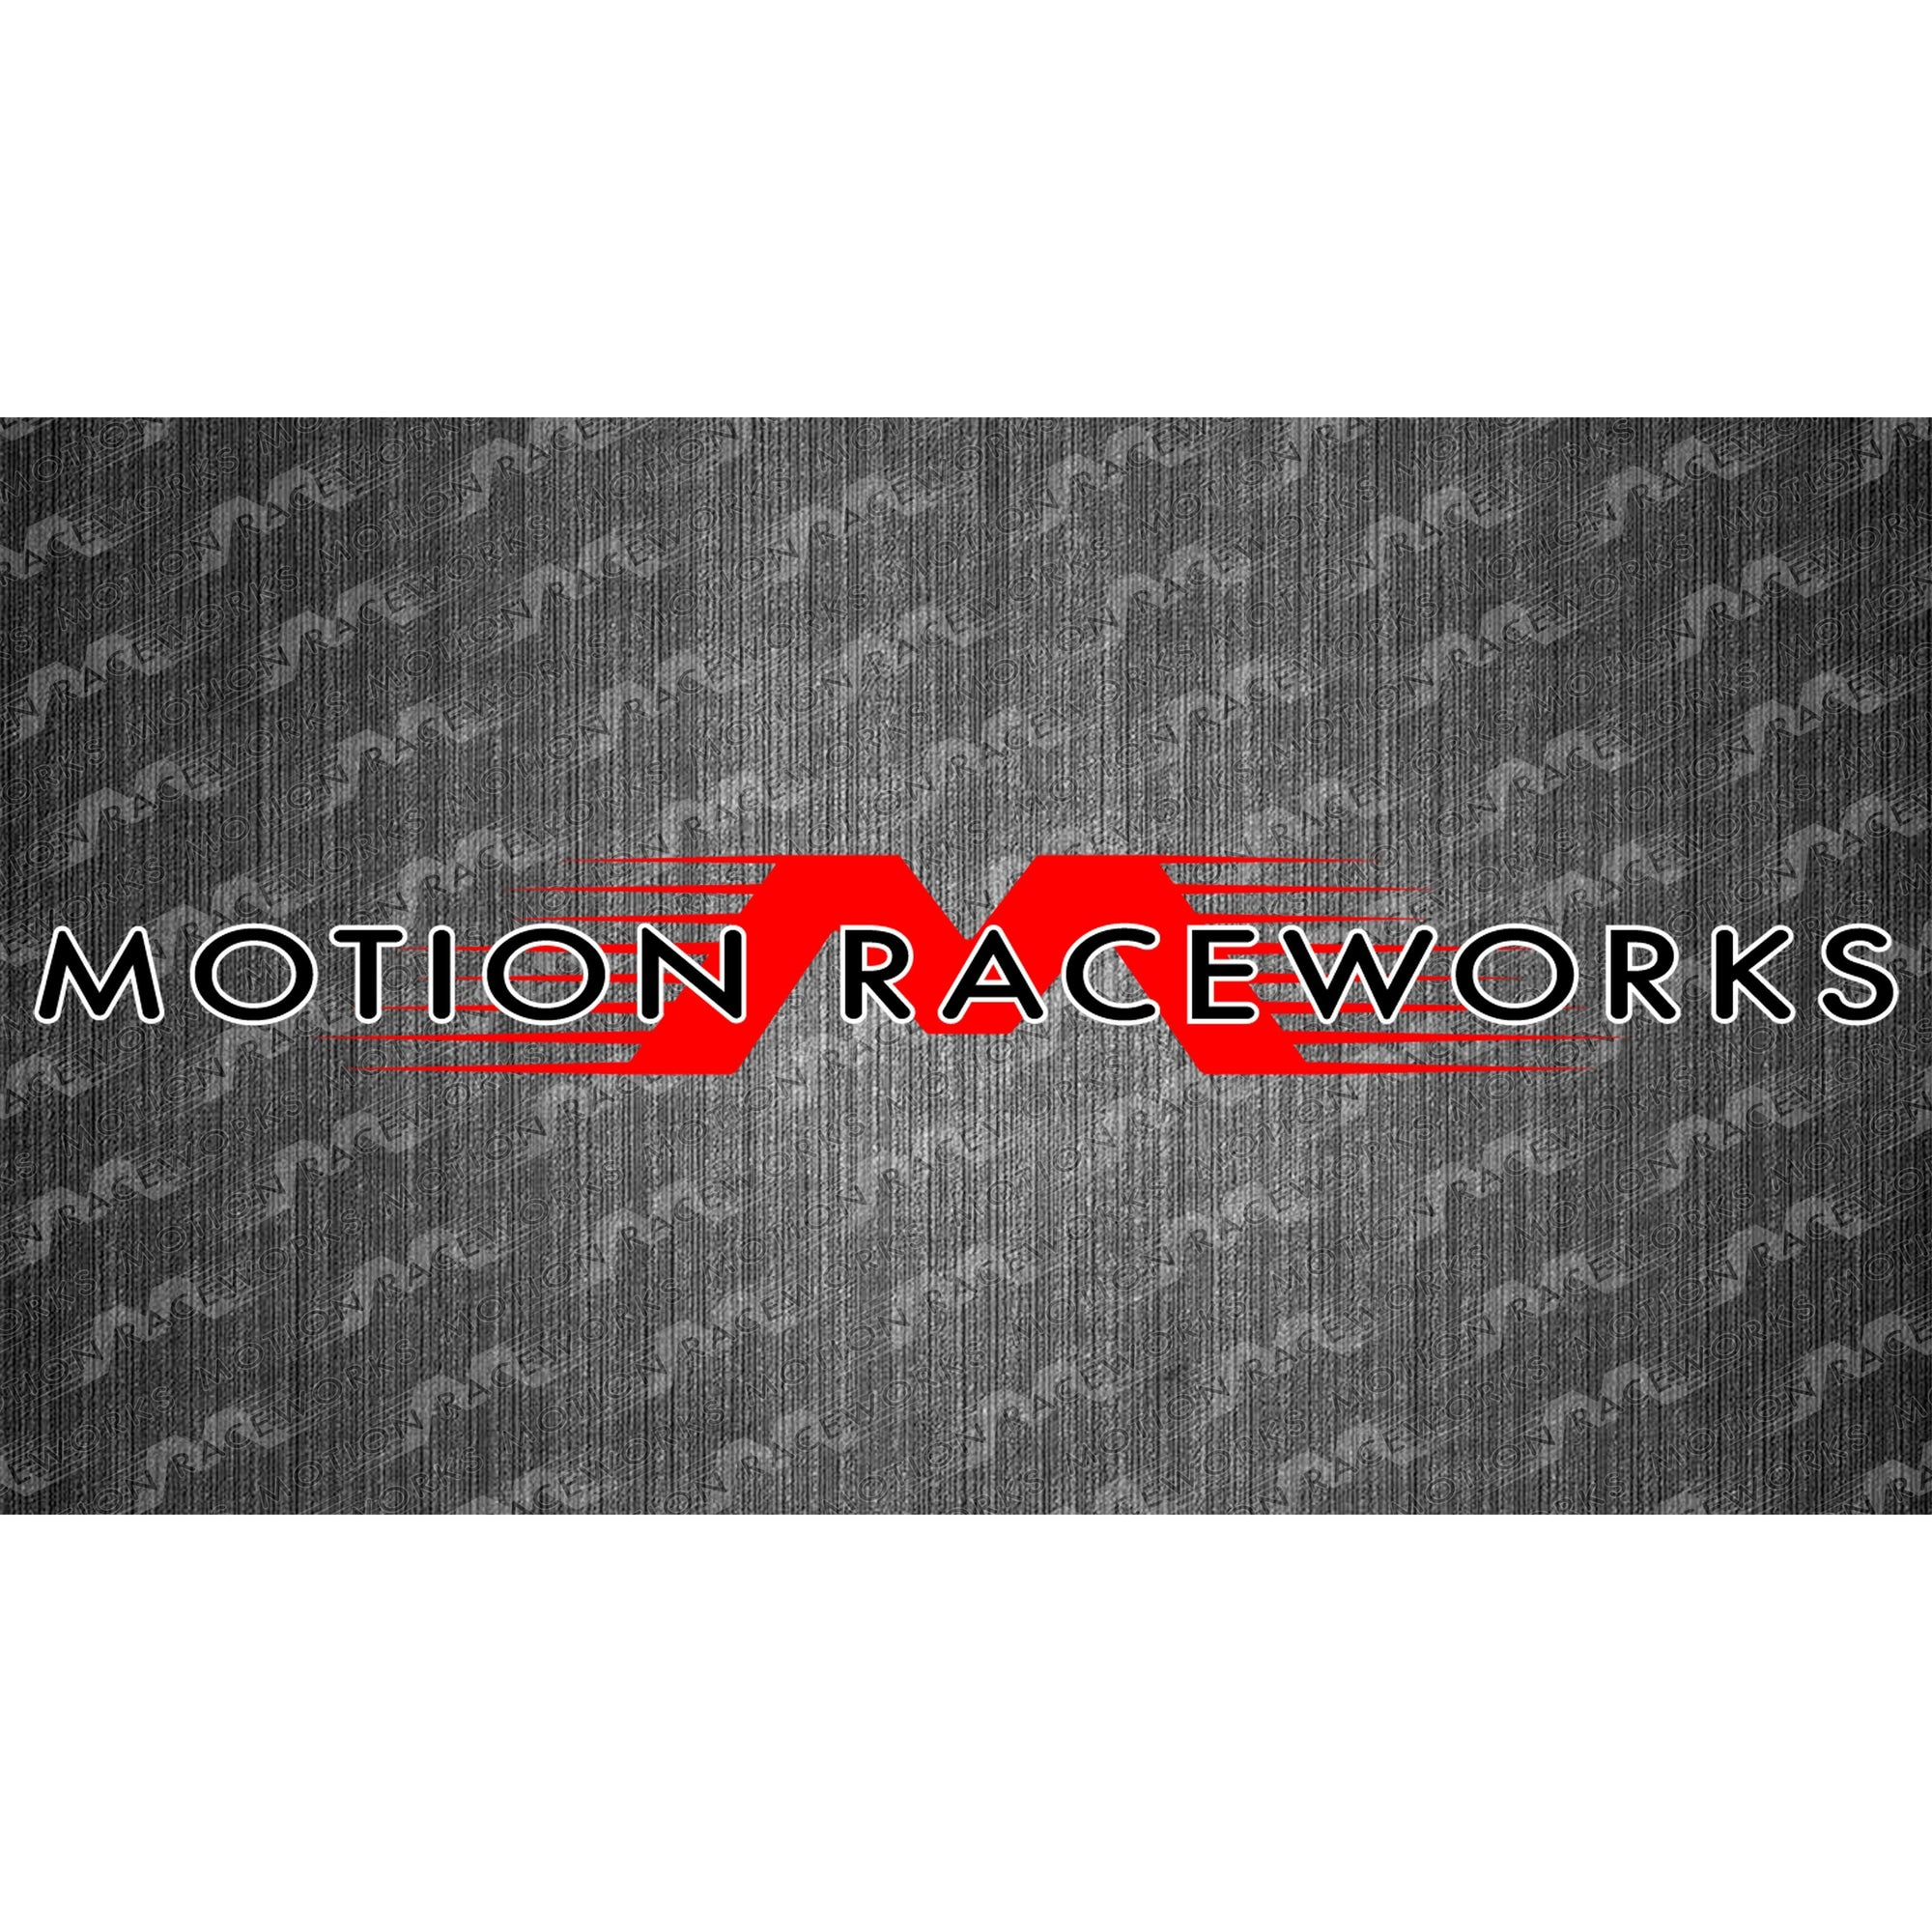 "Red/White Motion Raceworks Decal 8""x2""-Motion Raceworks-Motion Raceworks"